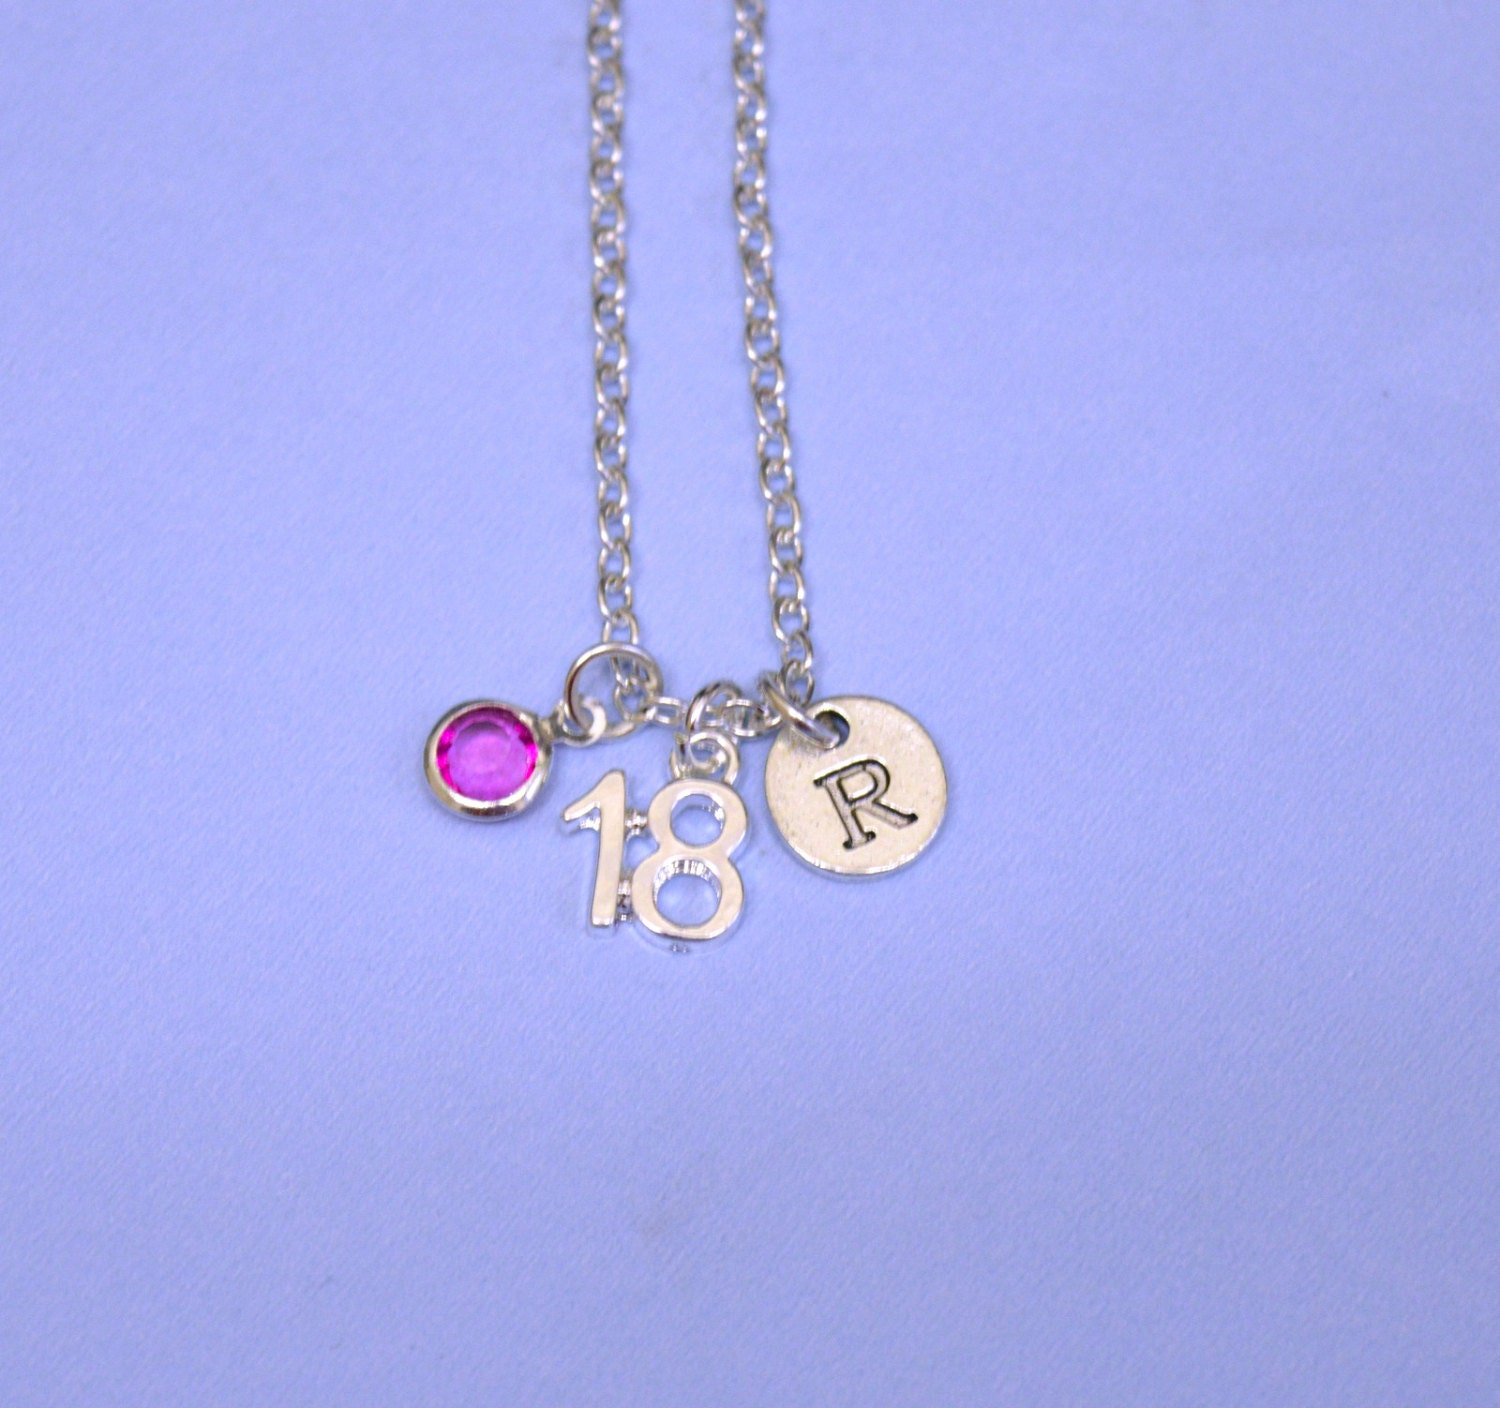 18th birthday gift 18th birthday necklace jewelry birthday